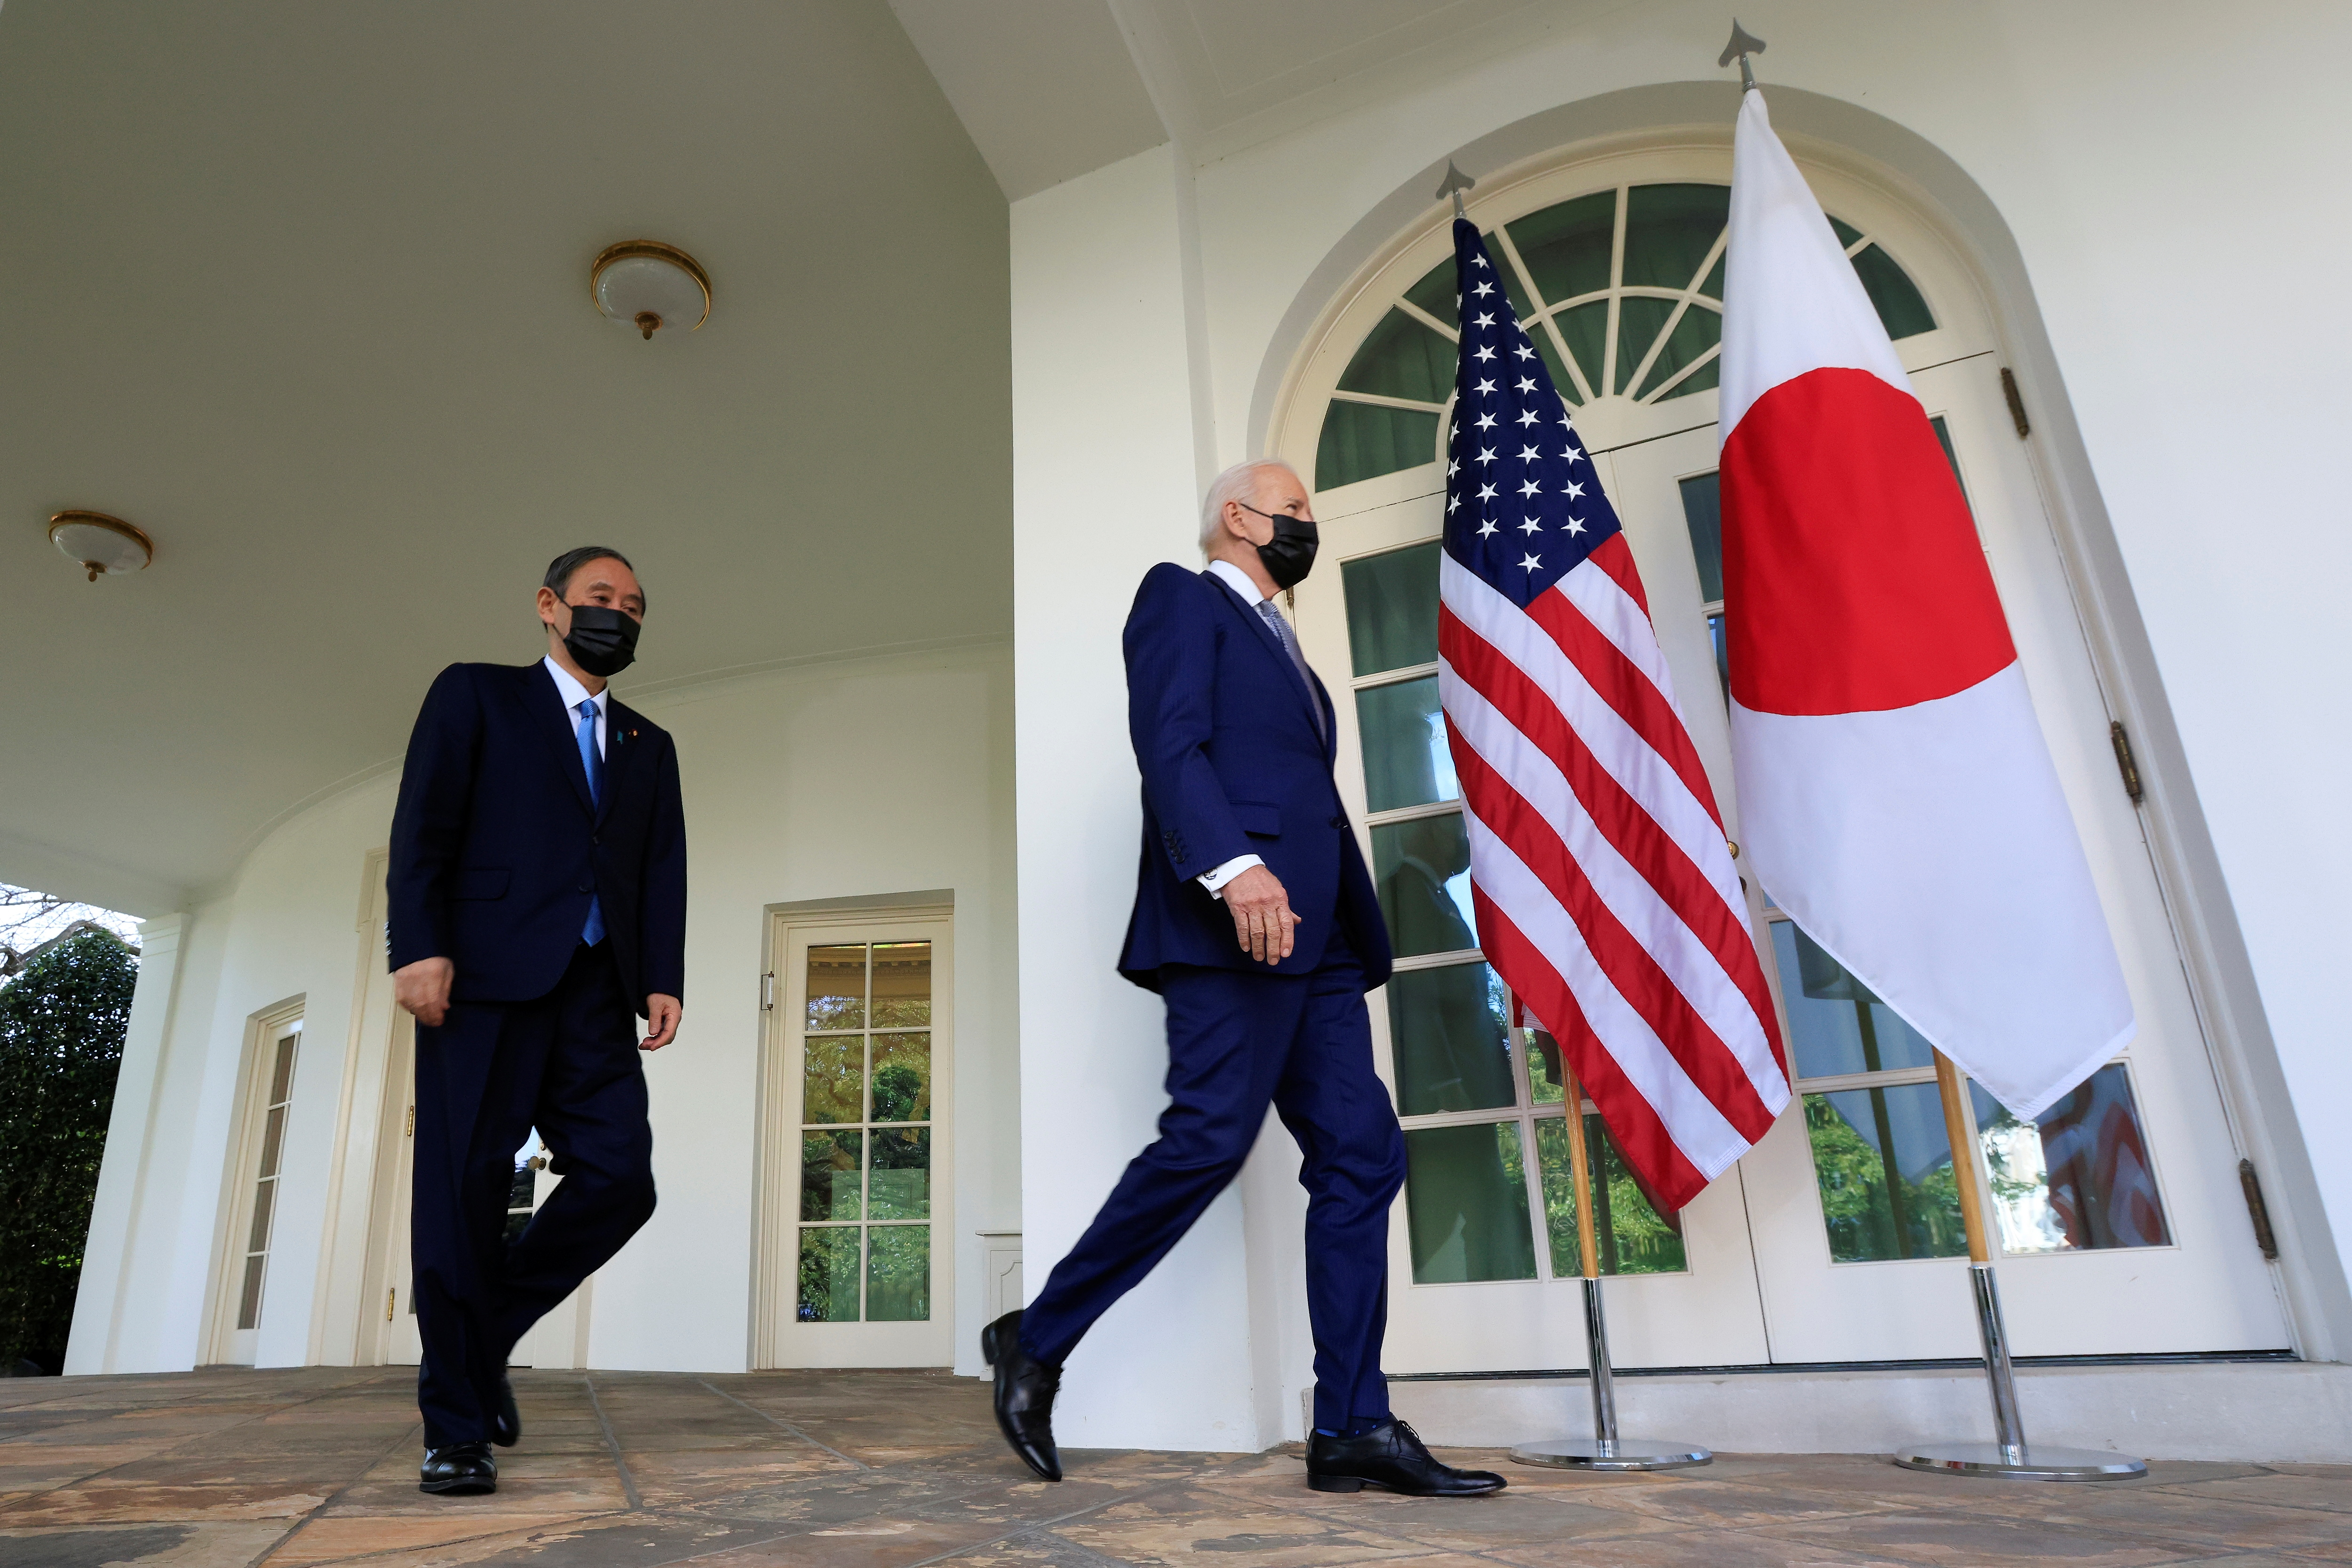 U.S. President Joe Biden walks out of the Oval Office with Japan's Prime Minister Yoshihide Suga ahead of a news conference at the White House in Washington, U.S., April 16, 2021. REUTERS/Tom Brenner